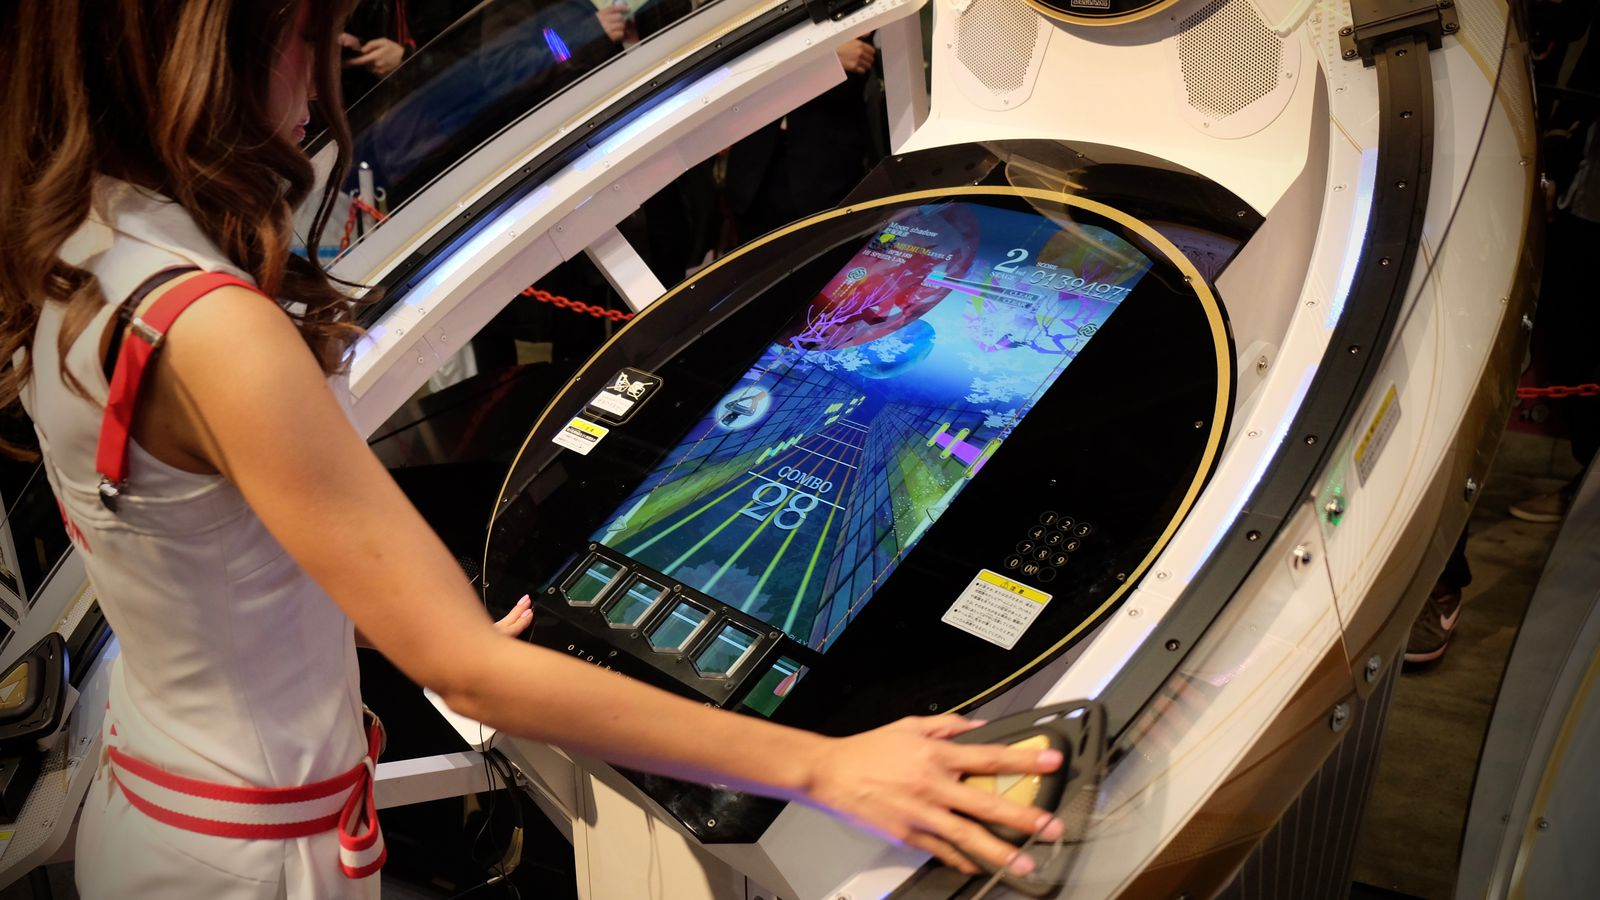 the video gaming culture in japan essay Steve redhead takes a byte from a fascinating but flawed analysis.